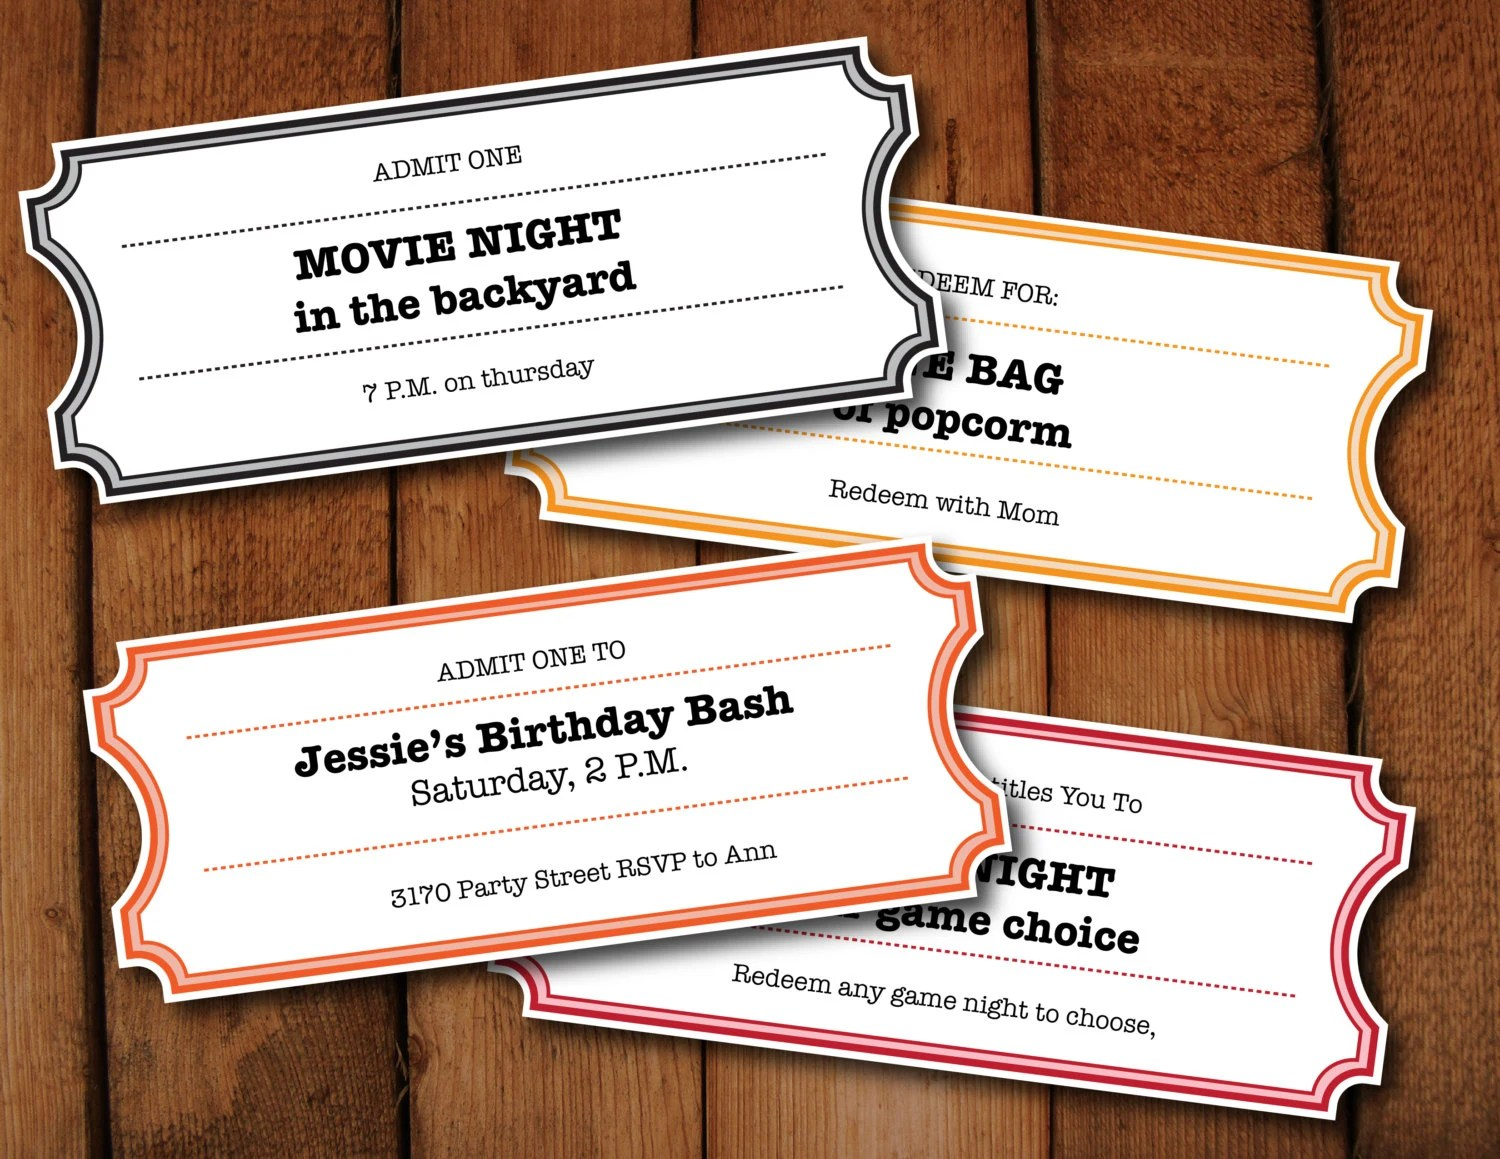 Printable Coupons \/ Tickets \/ Vouchers Movie Night Colors - create your own movie ticket